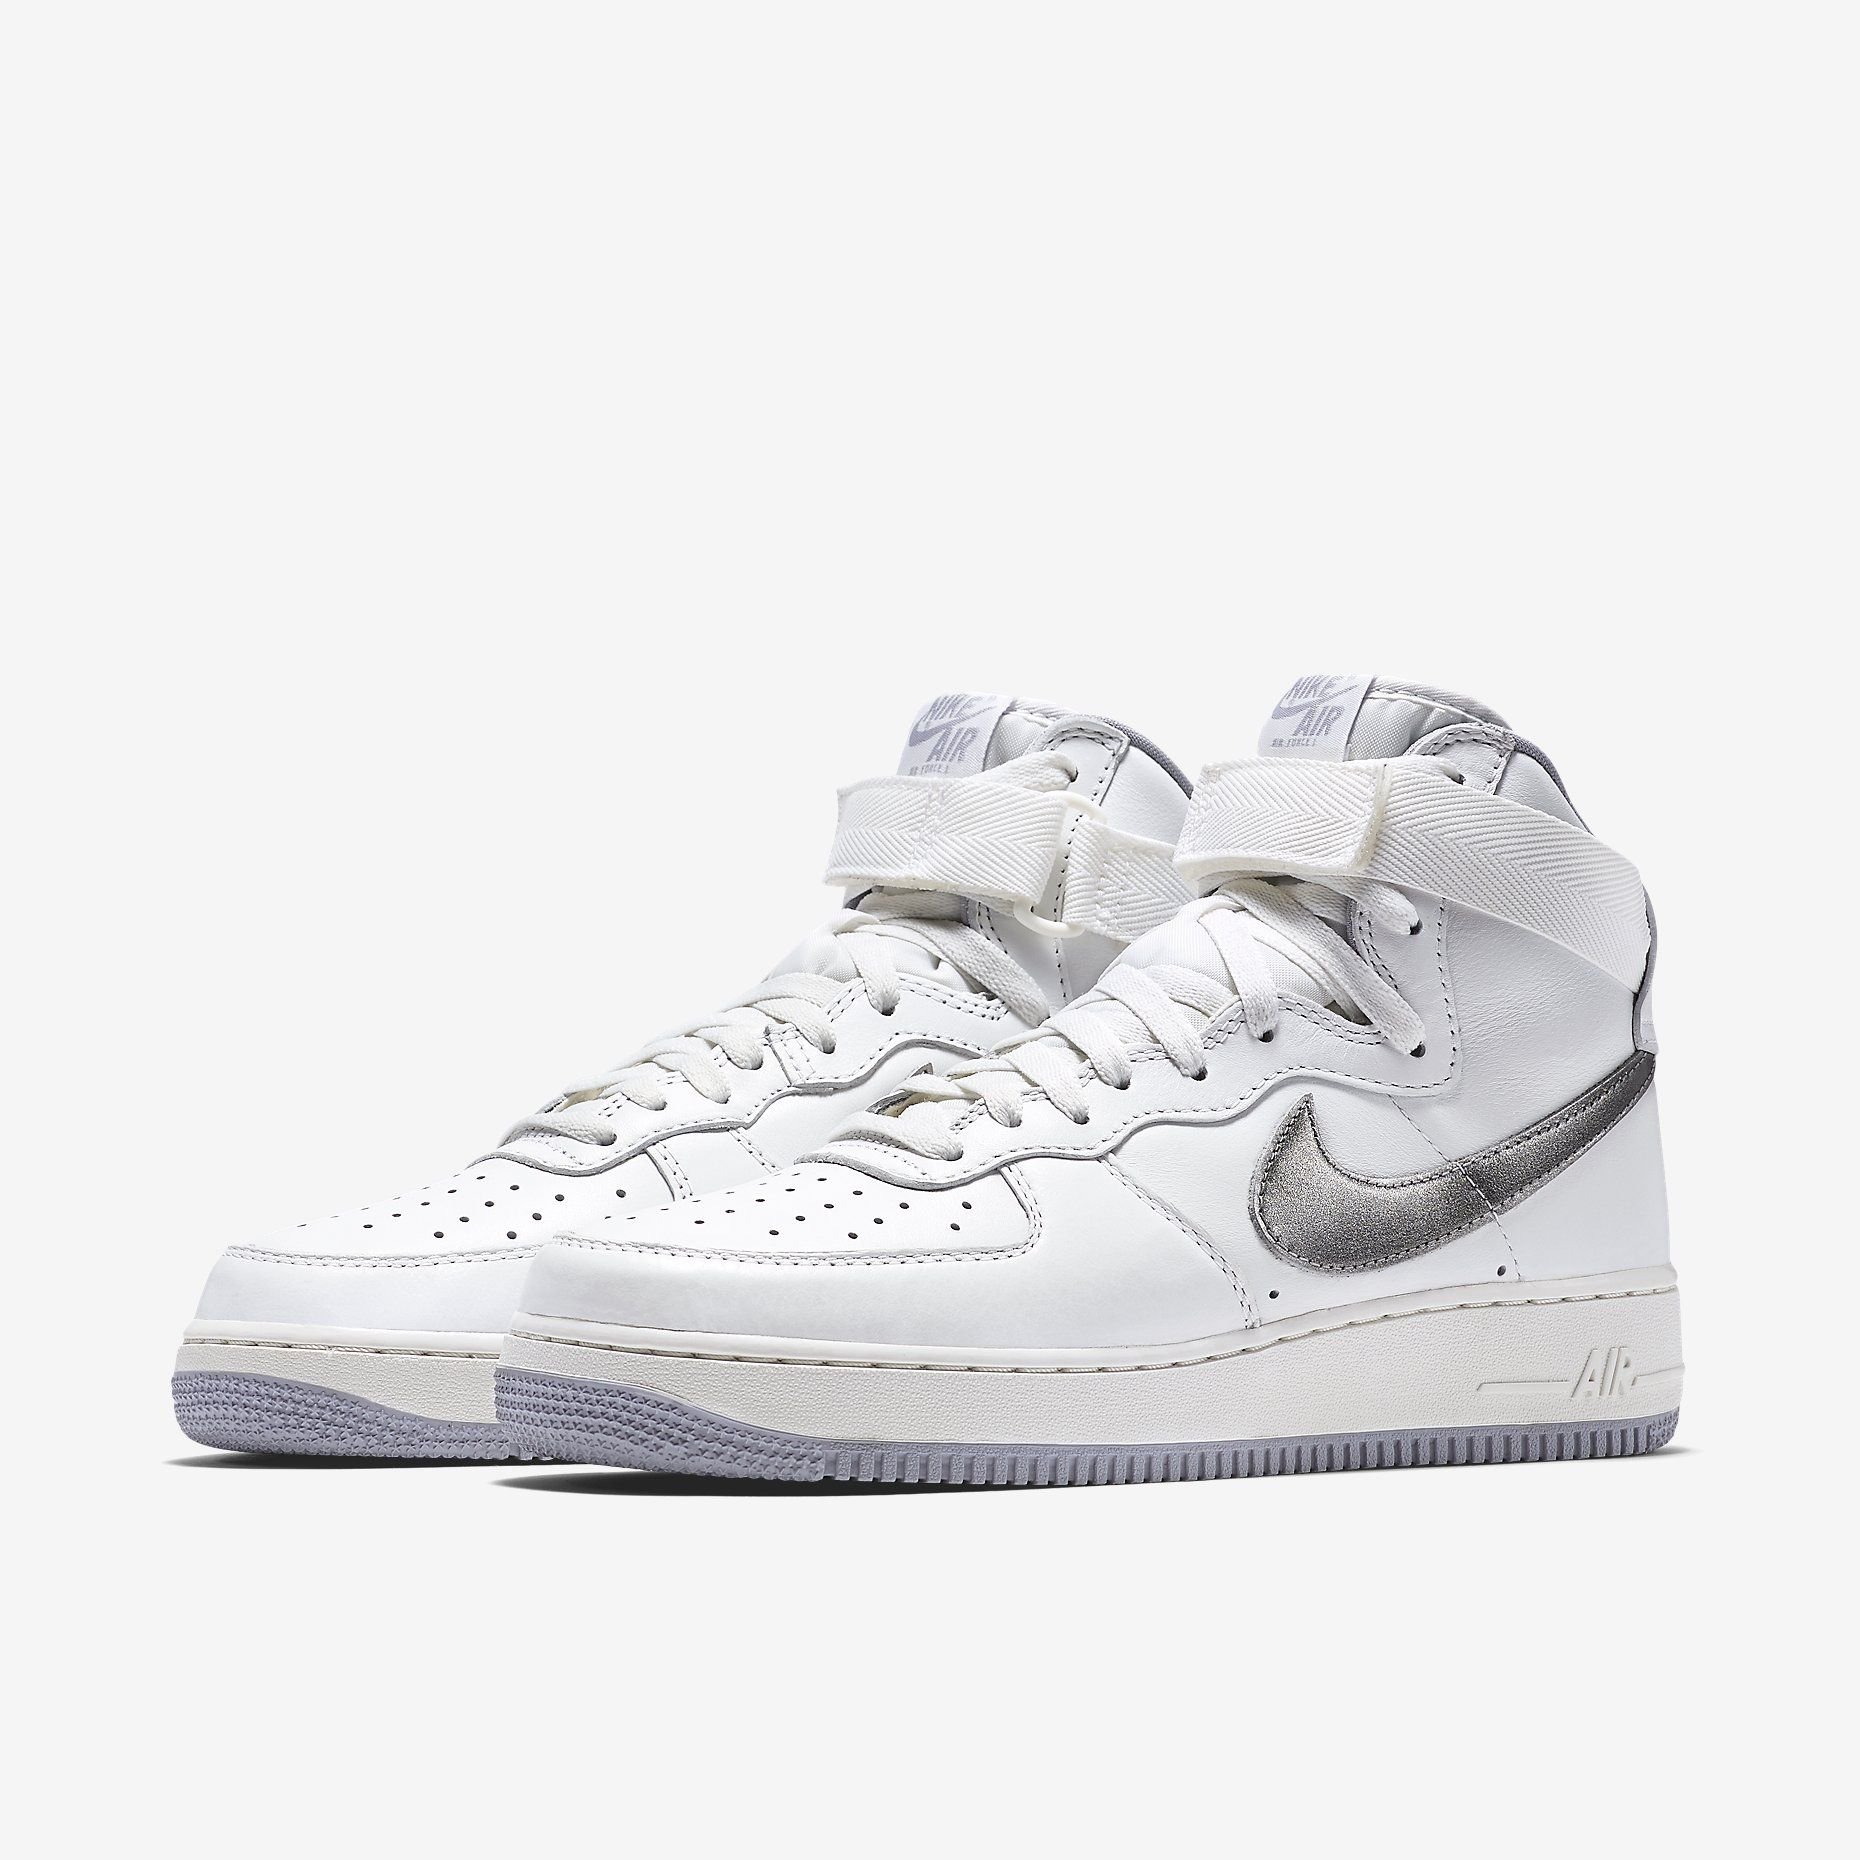 nike air force 1 release dates 2015